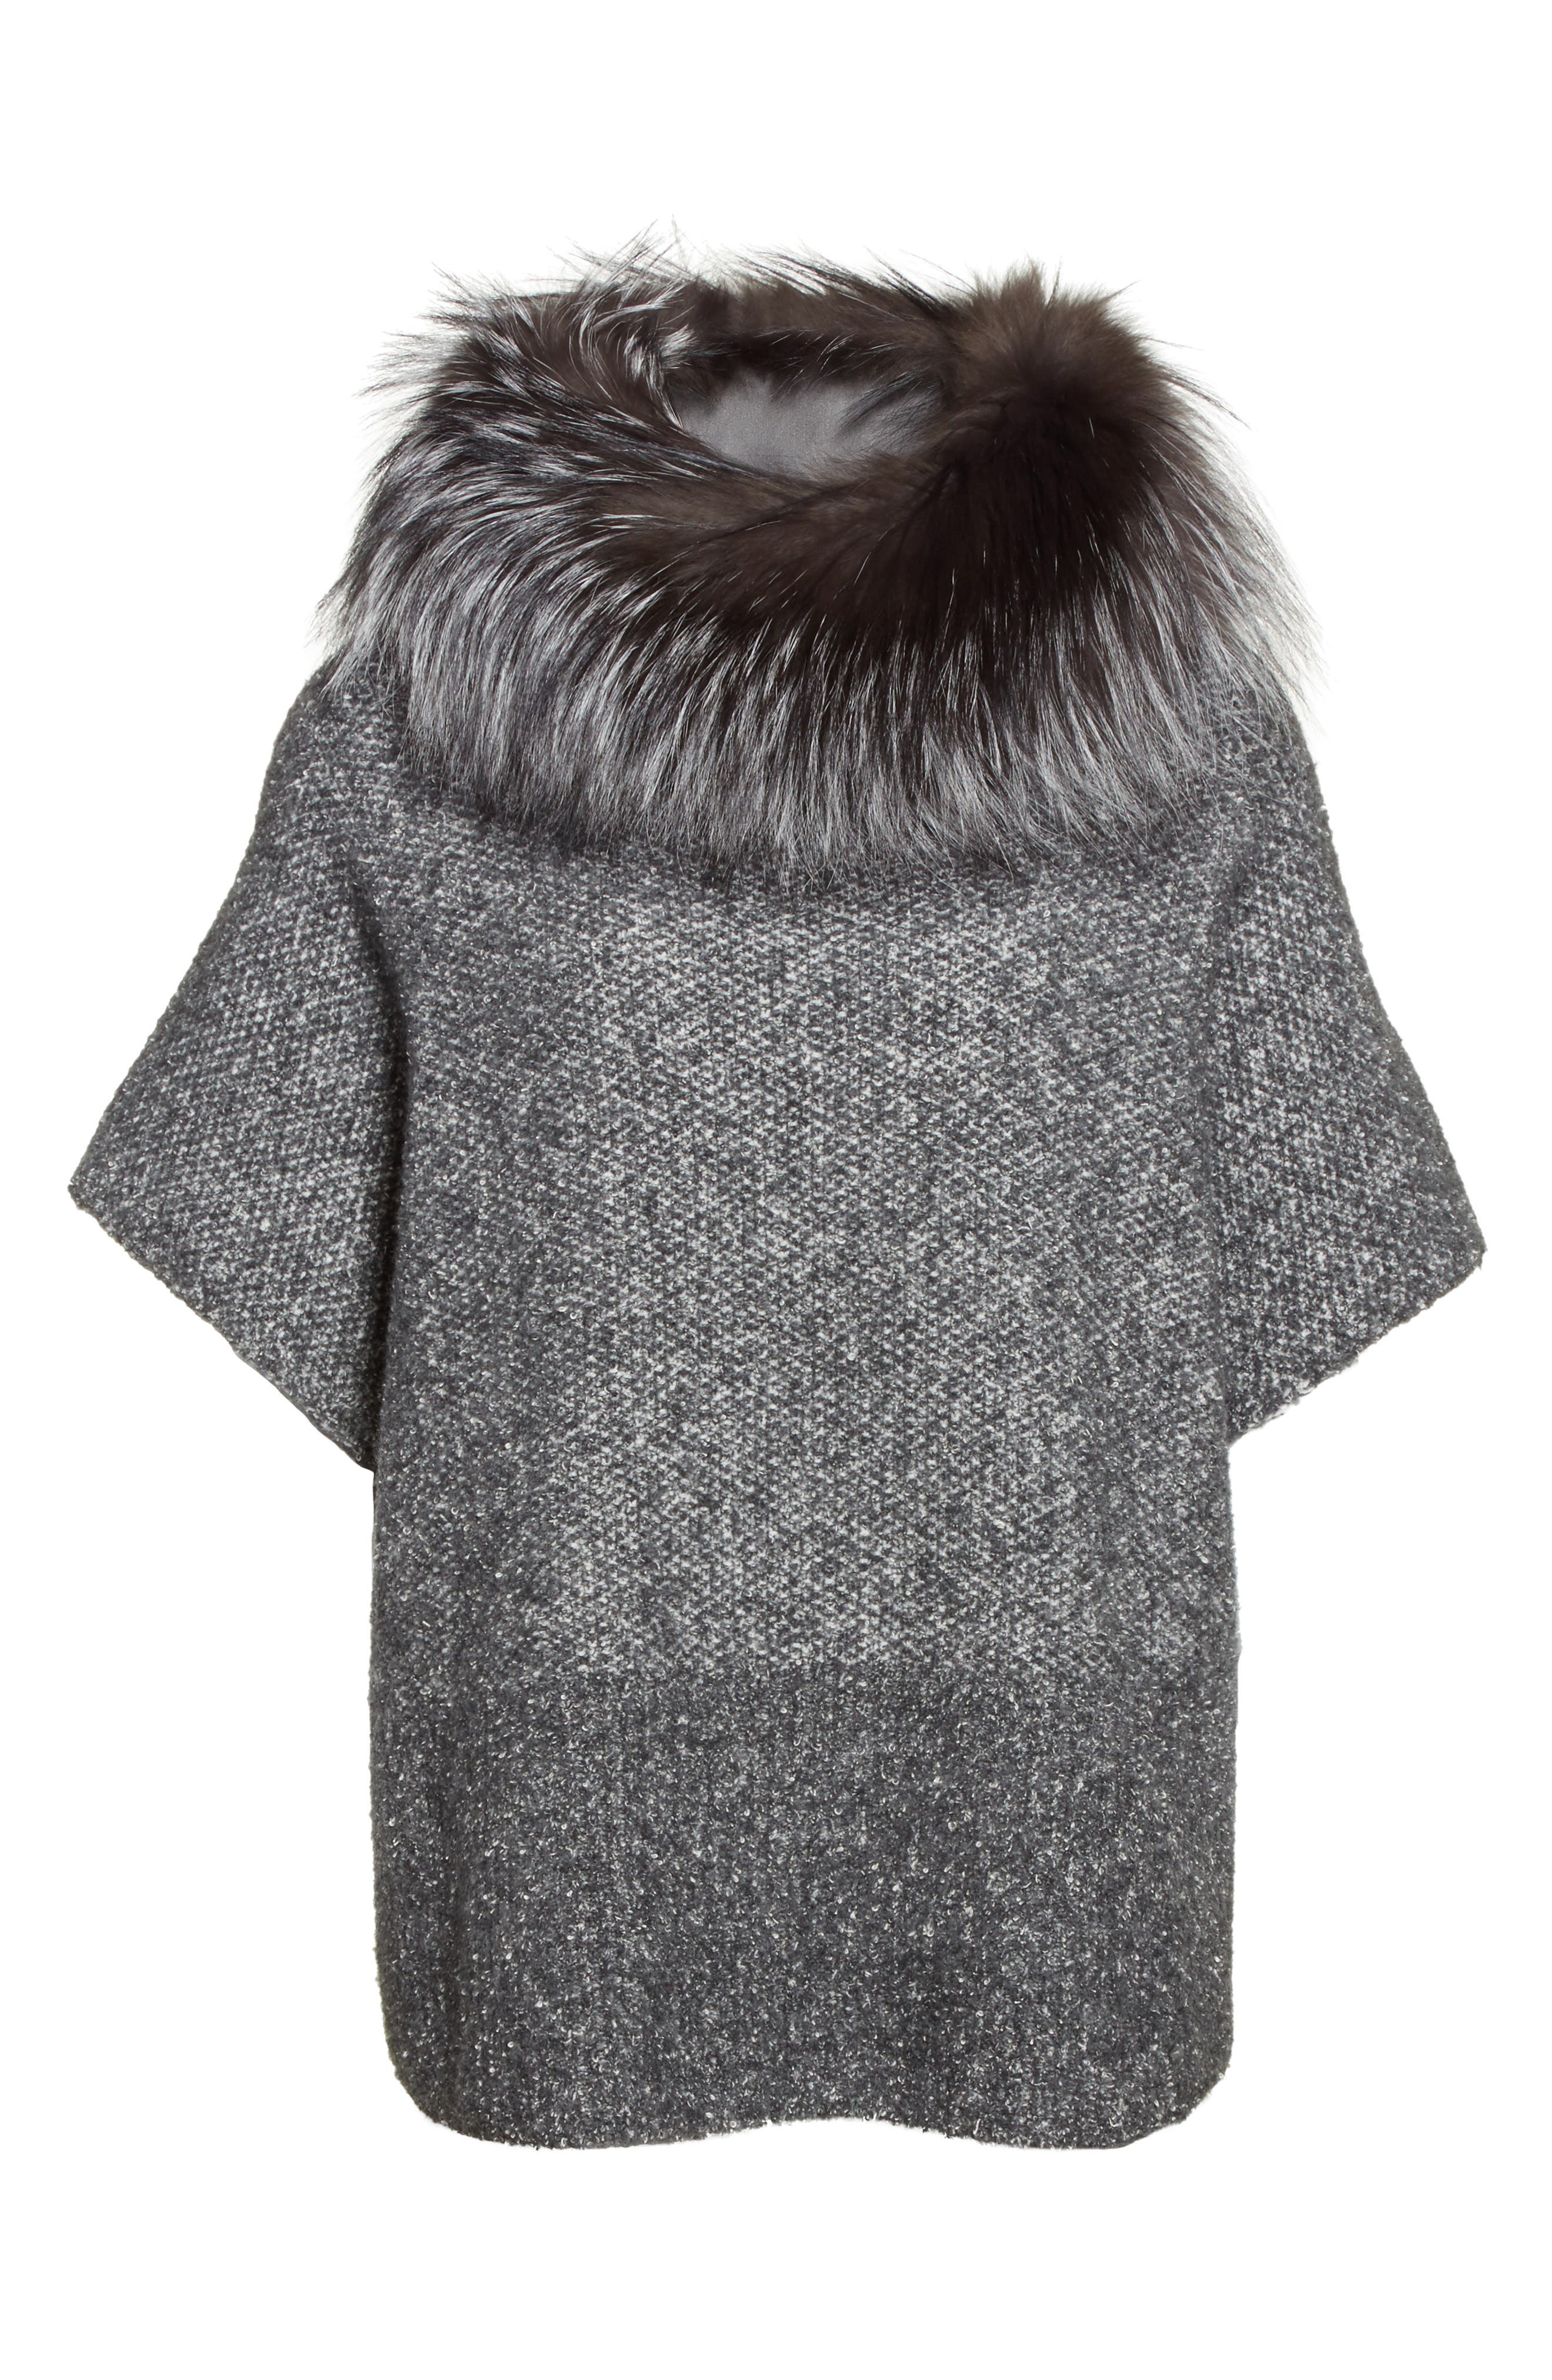 Pebble Tweed Knit Poncho with Genuine Fox Fur Collar,                             Alternate thumbnail 2, color,